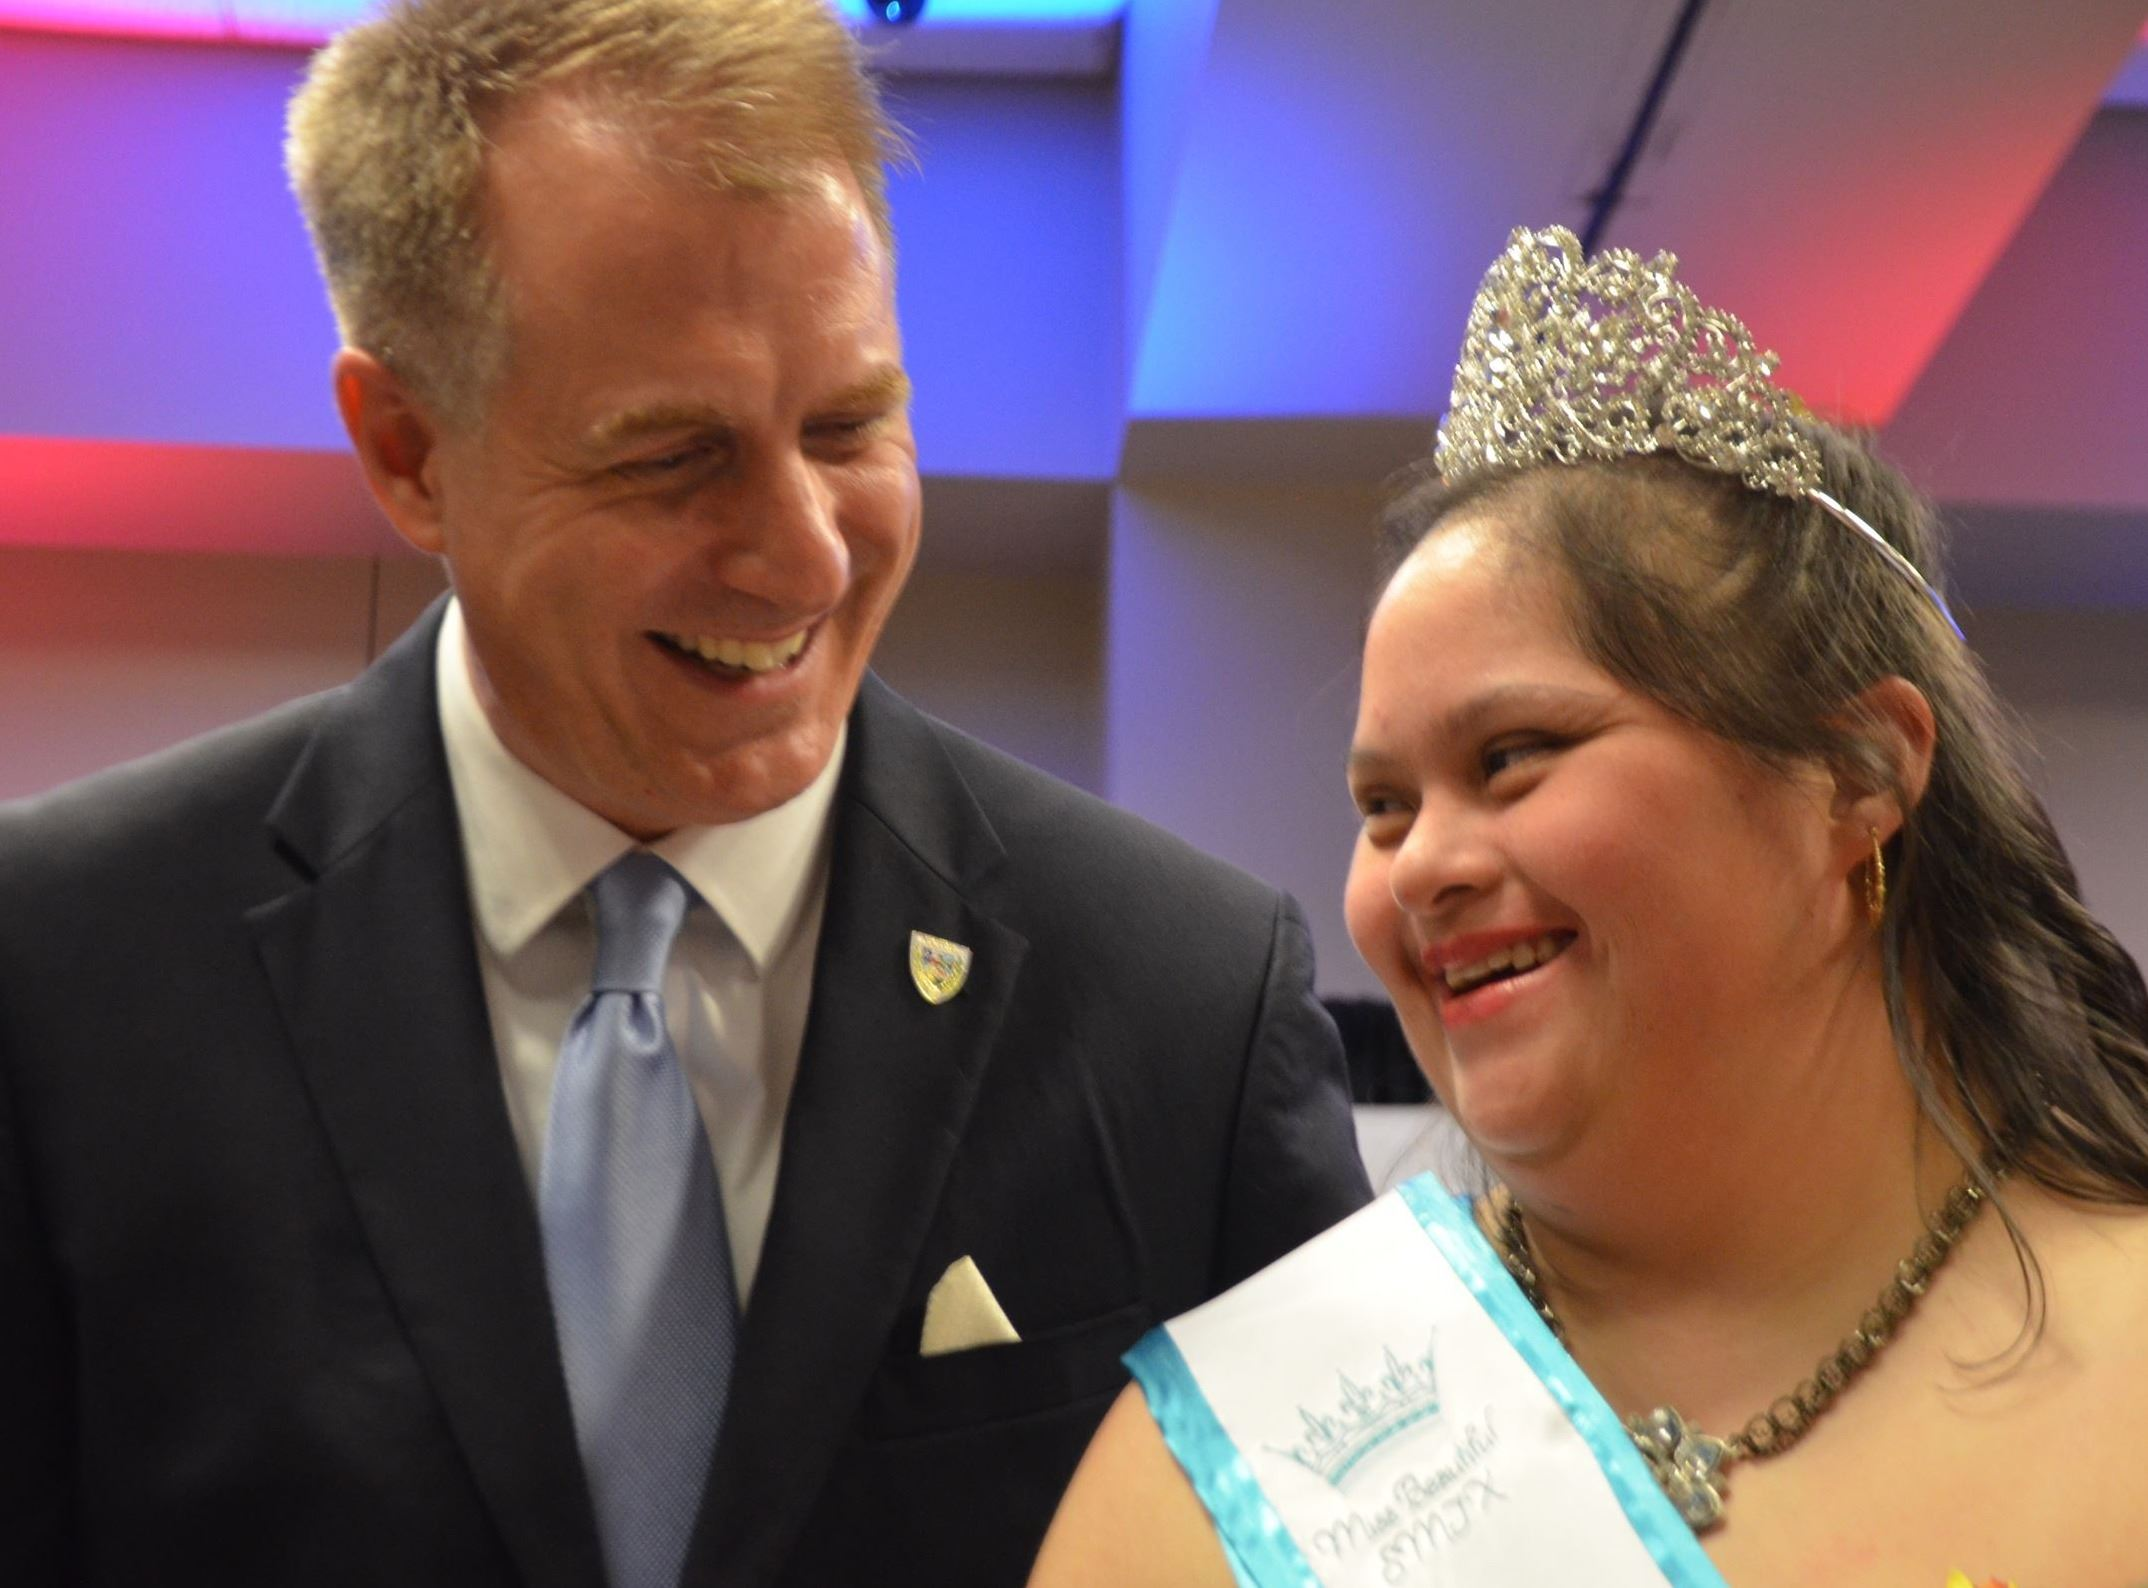 John Thomaides smiles with Elsa Sanchez, Miss Beautiful SMTX 2019